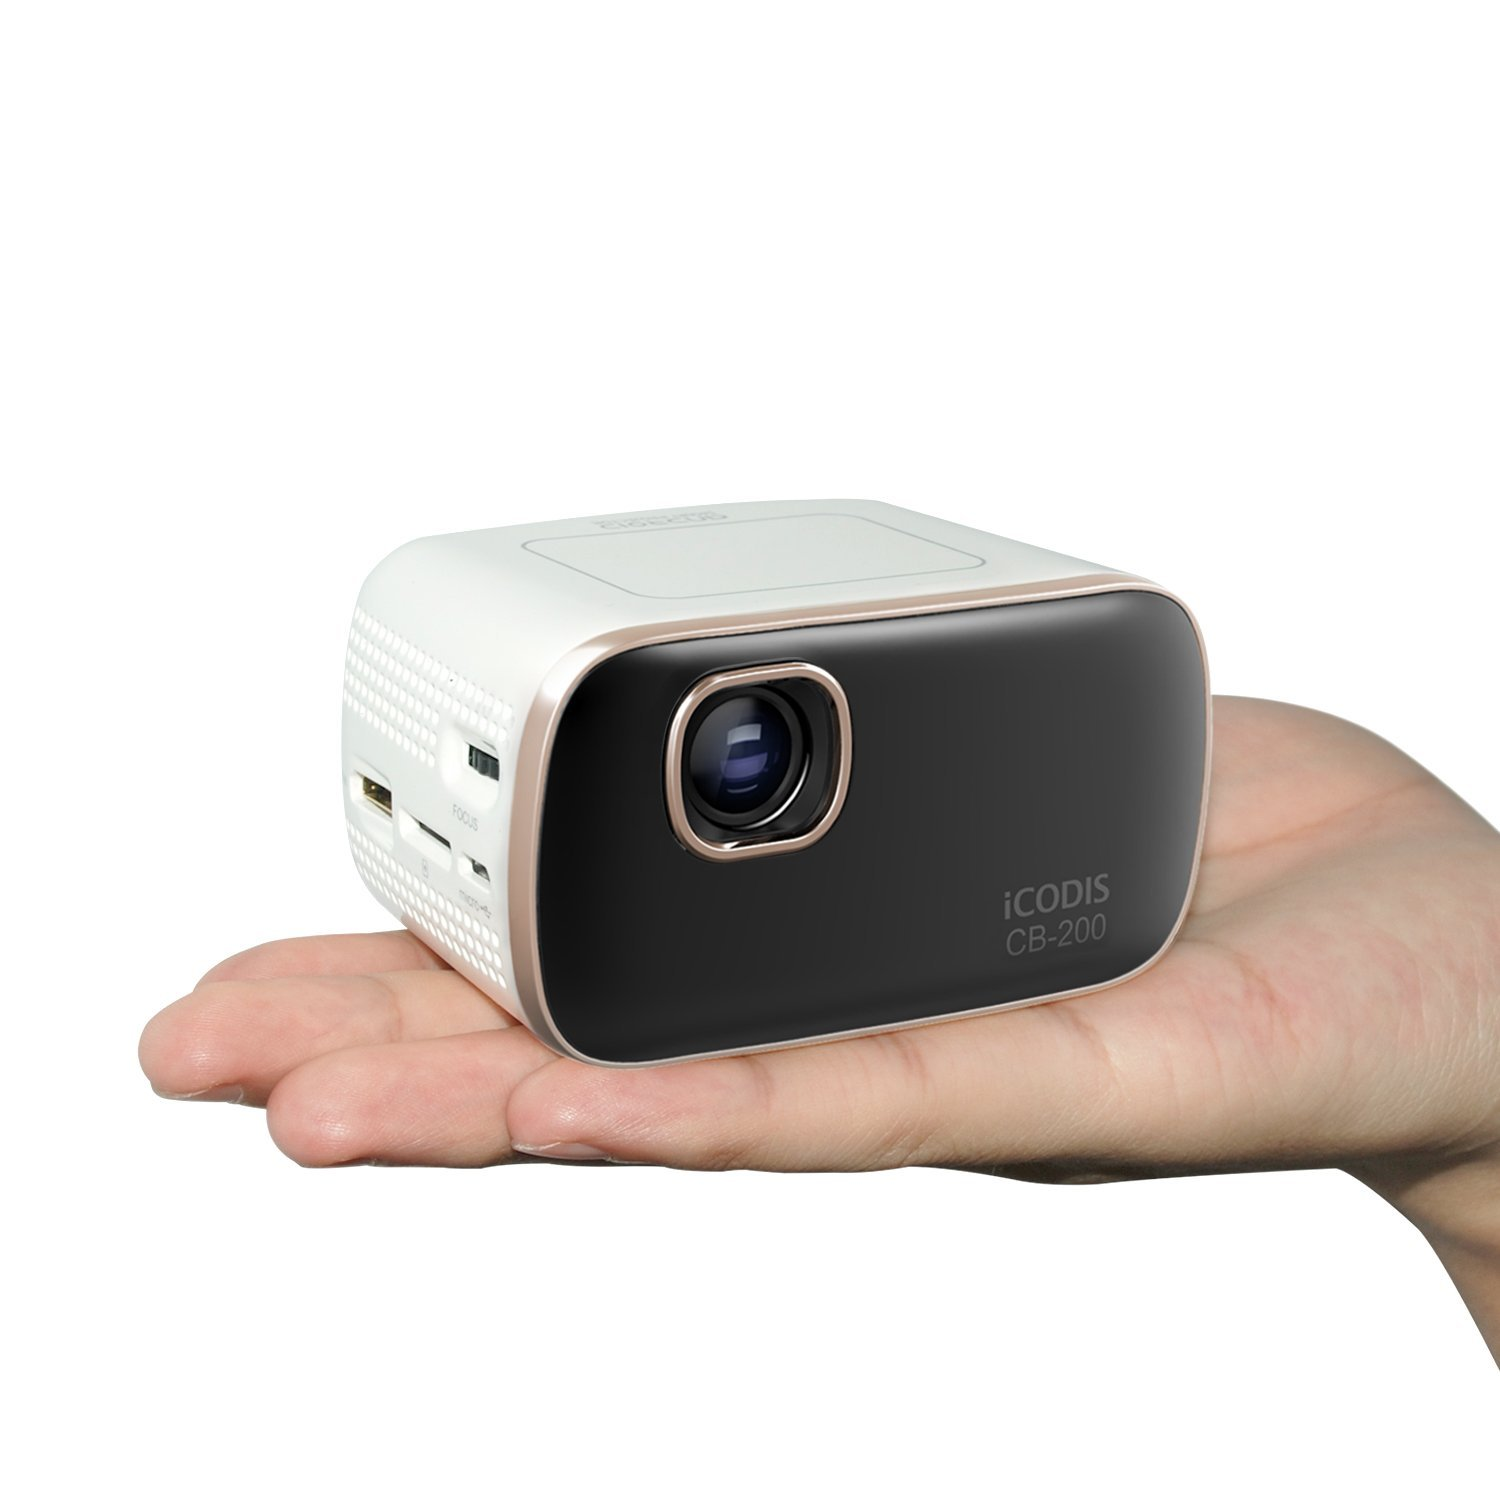 Icodis cb 200 pico mobile projector energy healing stone for Mini portable pocket projector